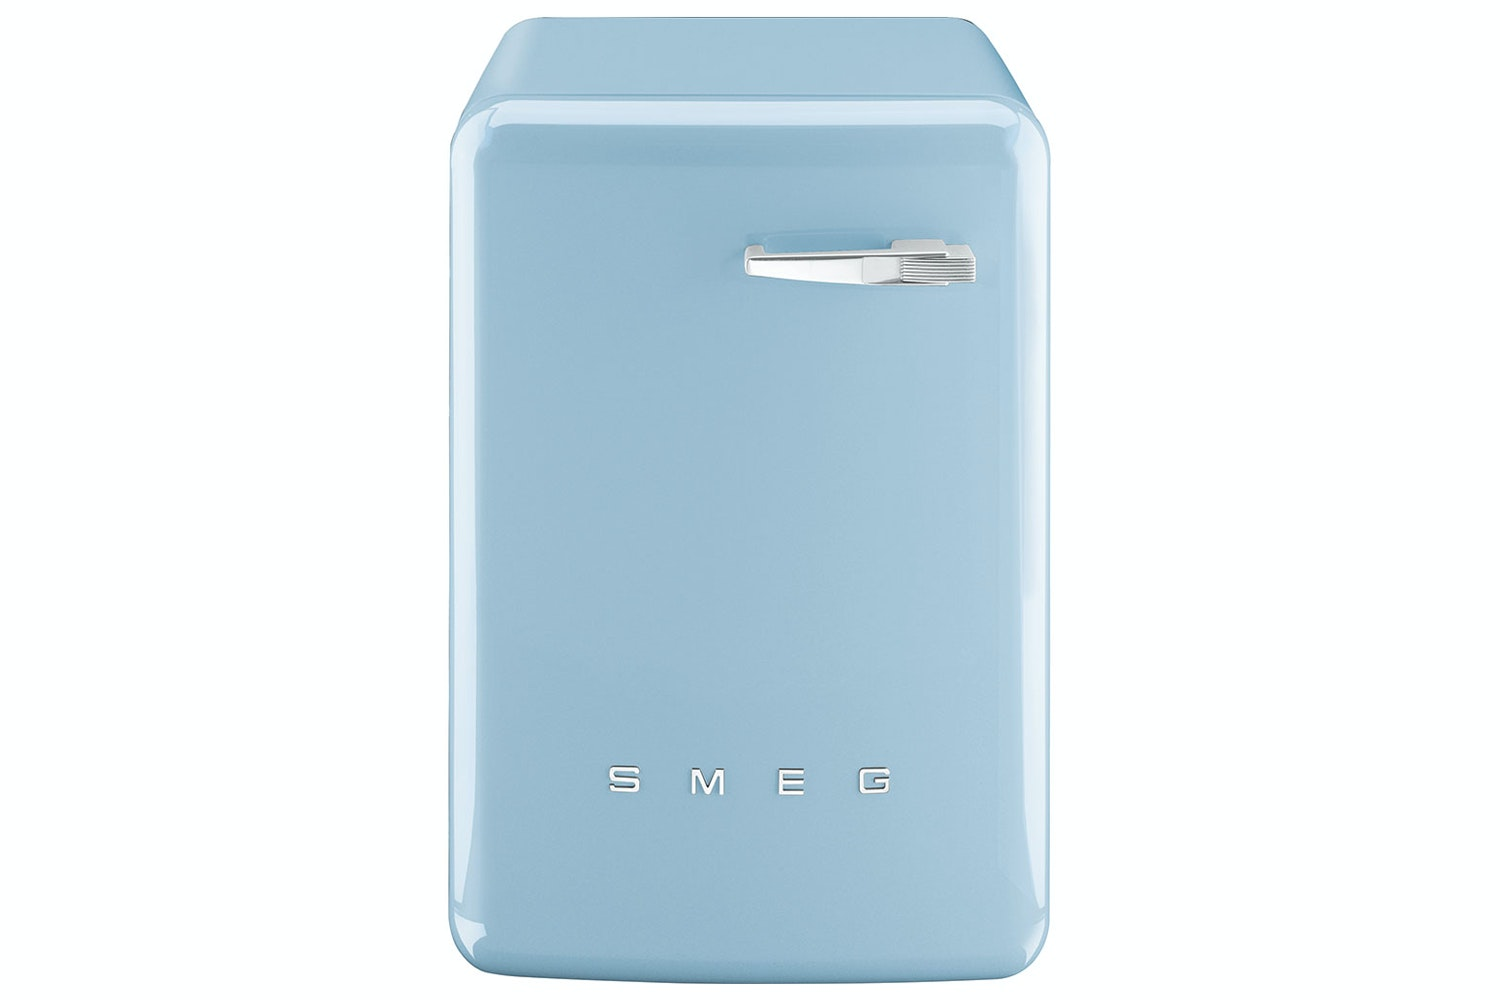 Smeg 7kg Freestanding Washing Machine | WMFABPB-2 | Pastel Blue